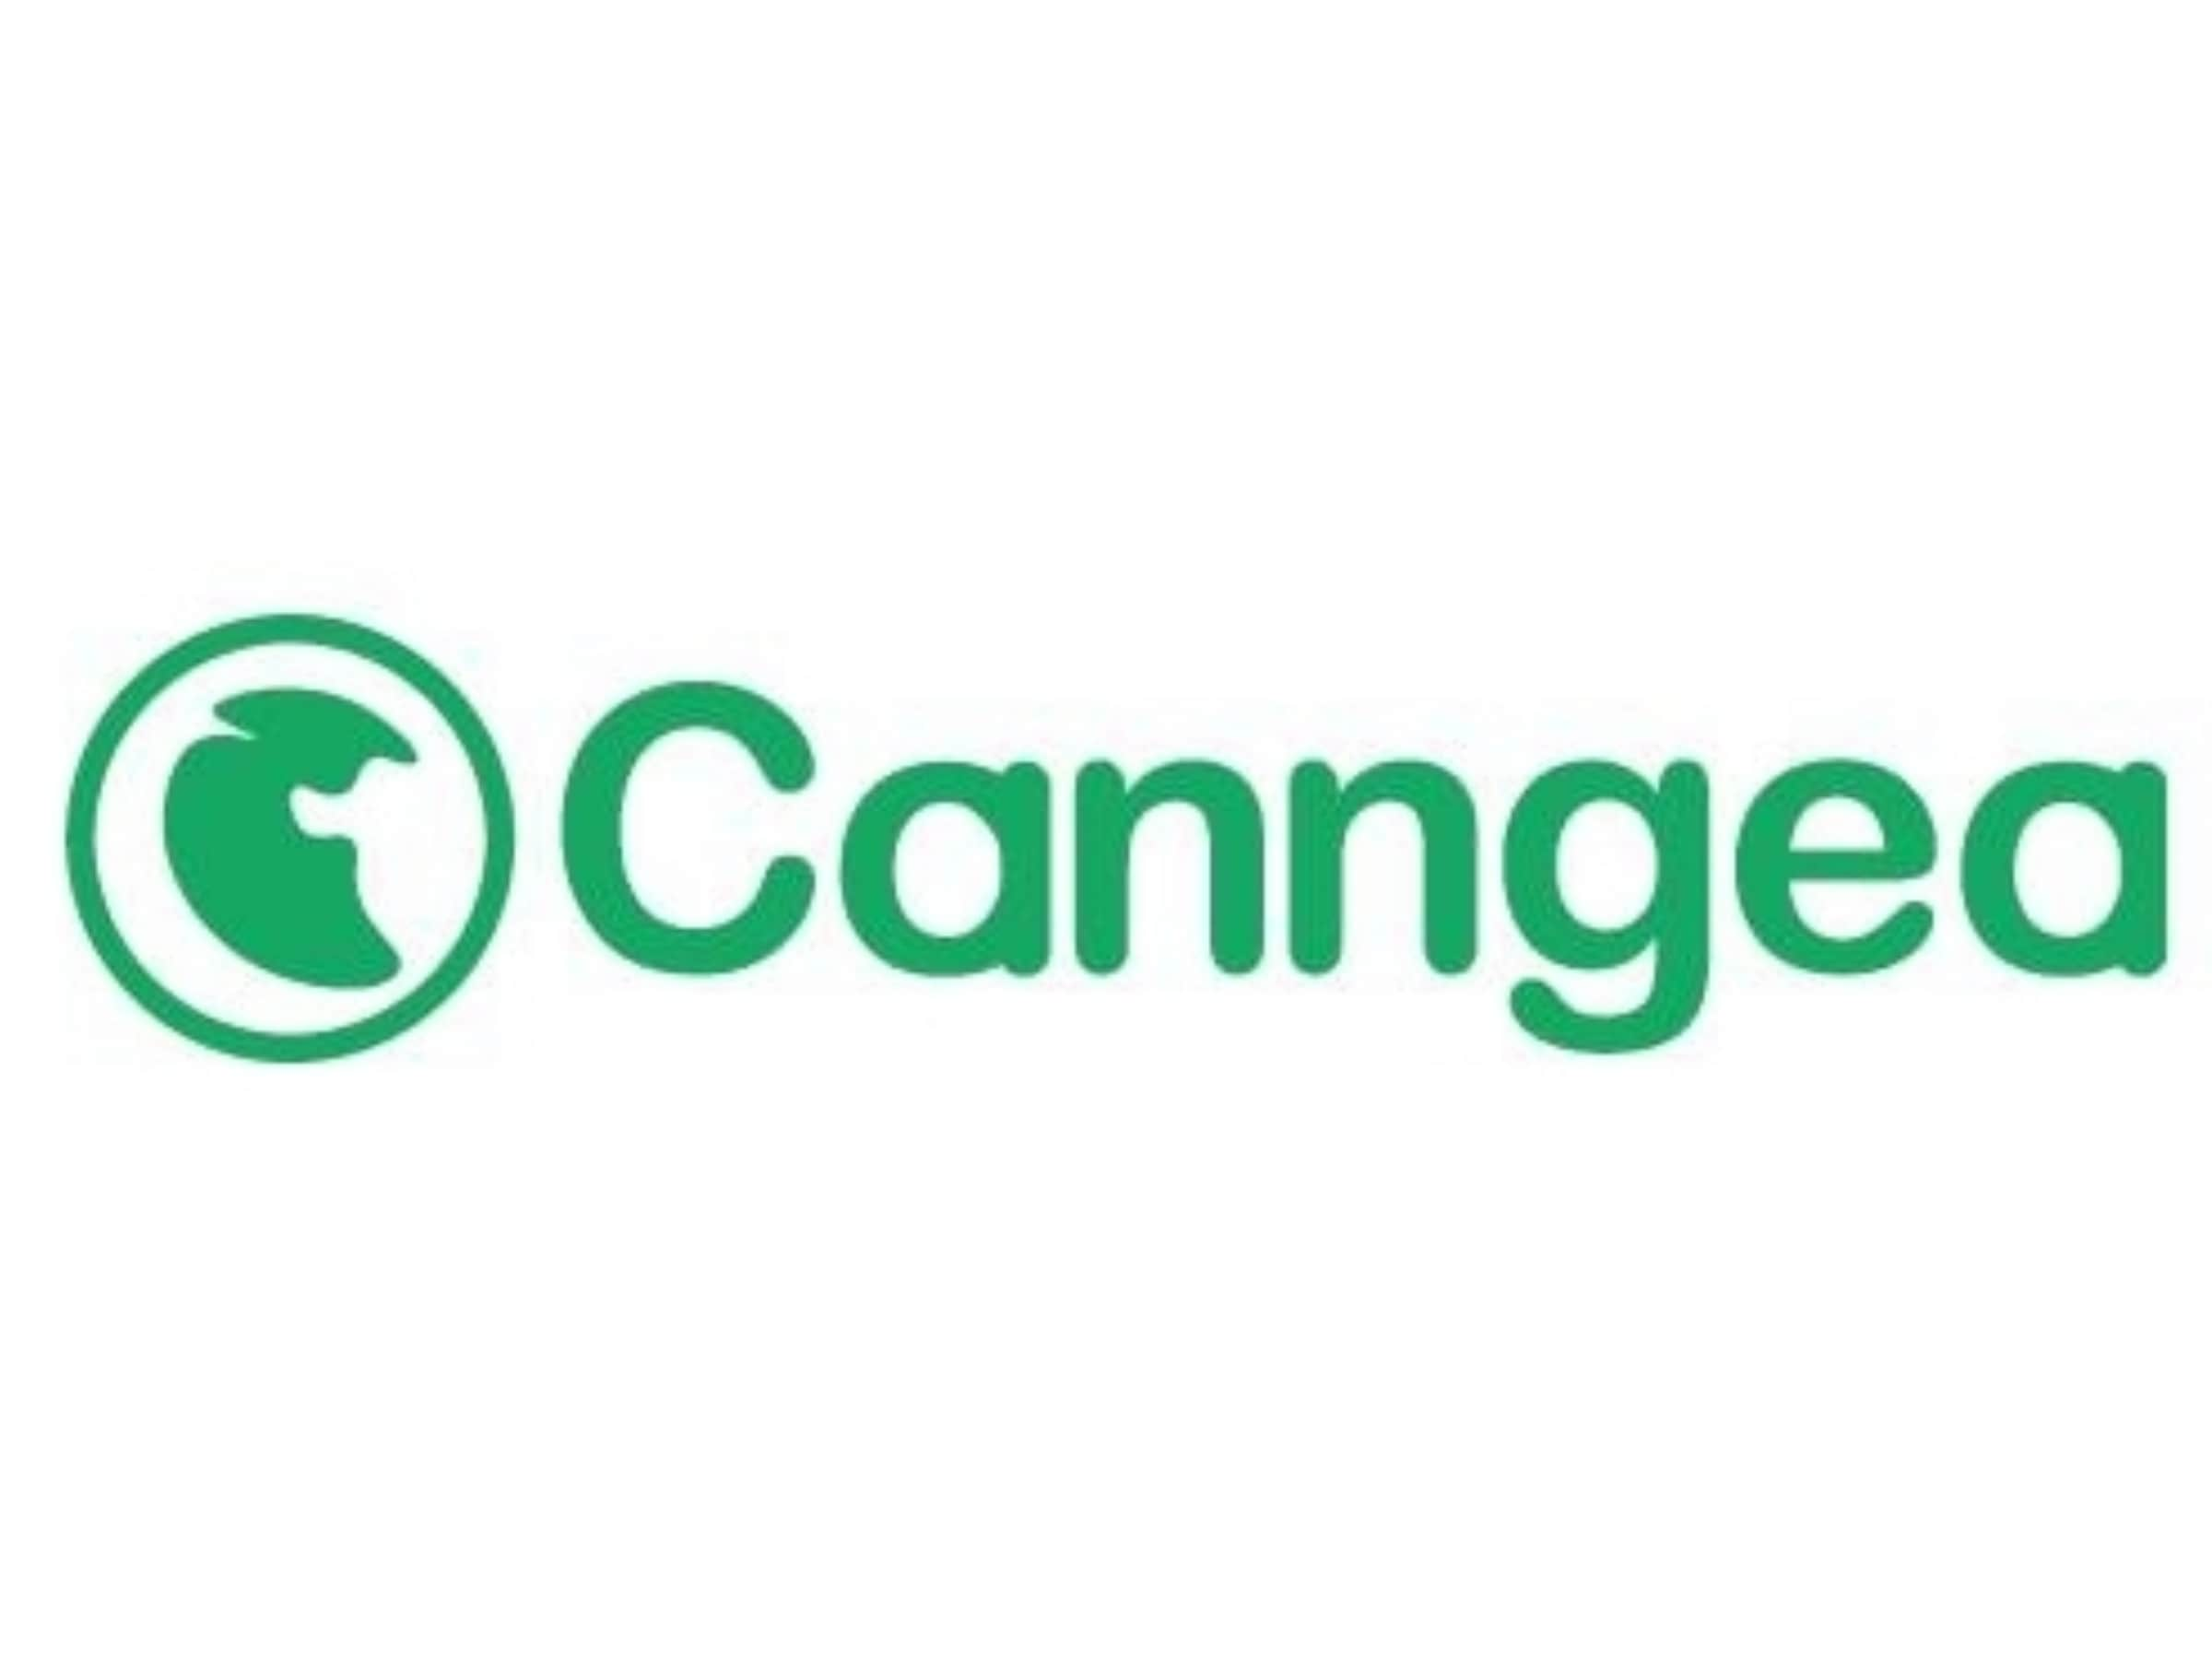 Canngea Pty Ltd